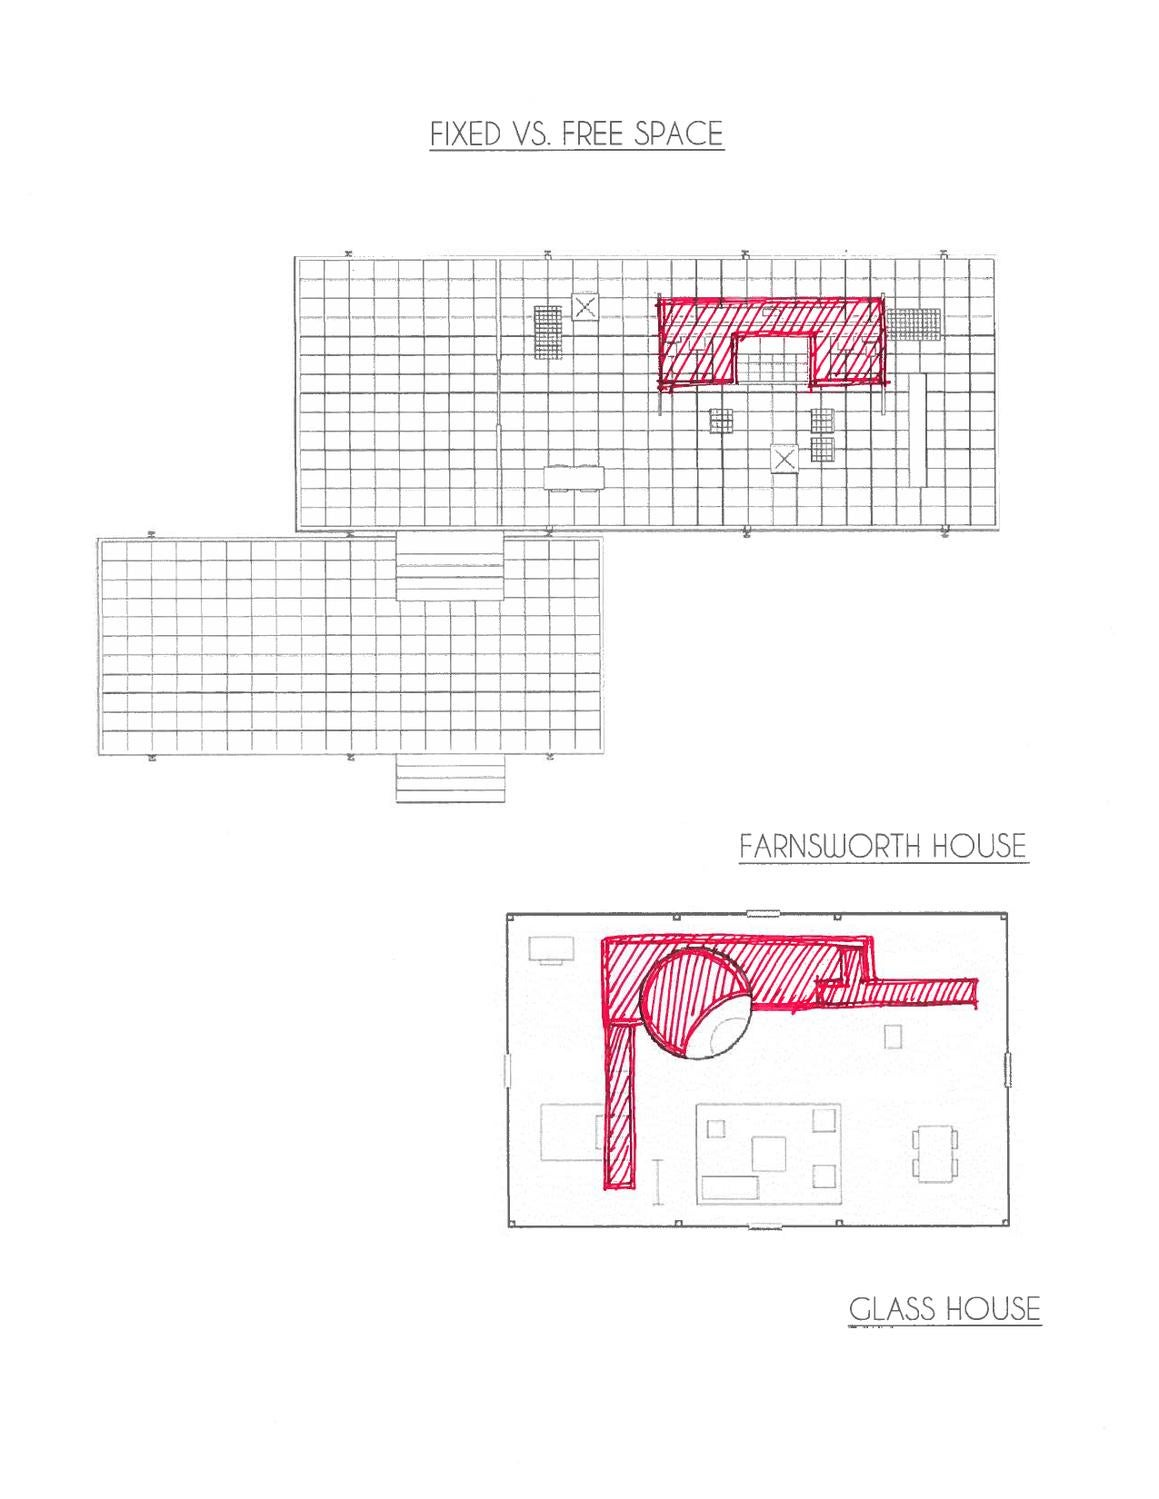 Case Study Analysis: Farnsworth House & The Glass House by